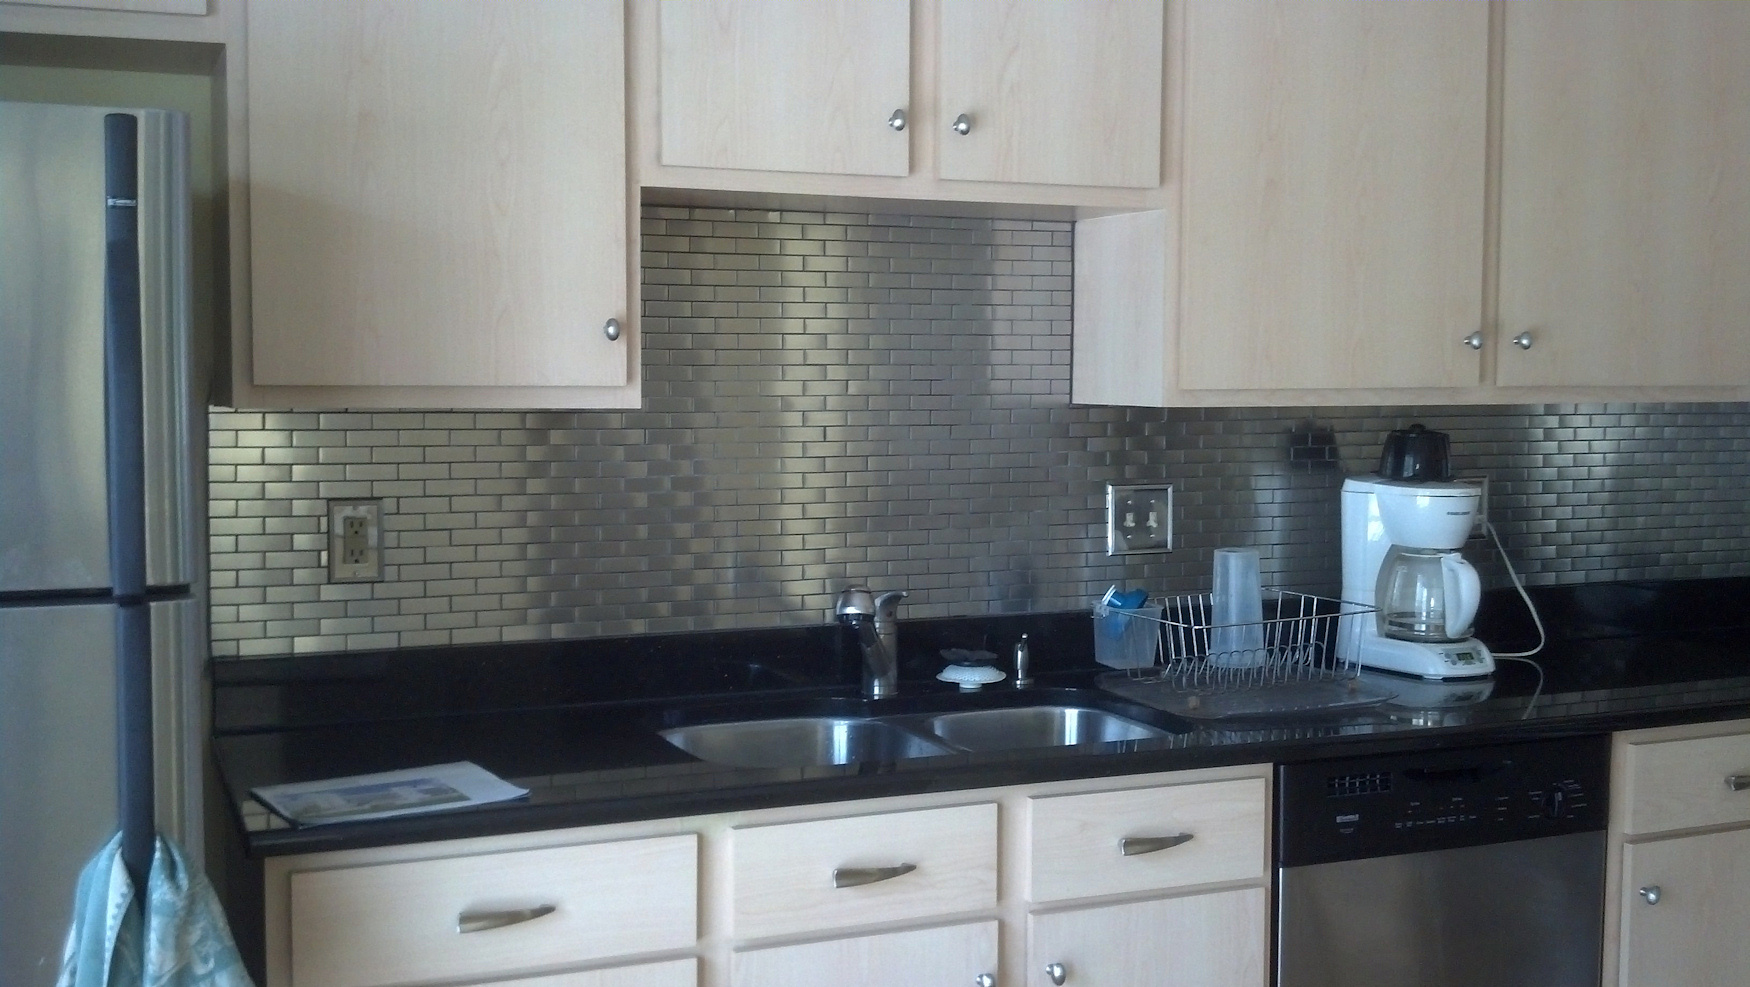 5 diy stainless steel kitchen makeovers on the cheap do for Stainless steel kitchen ideas